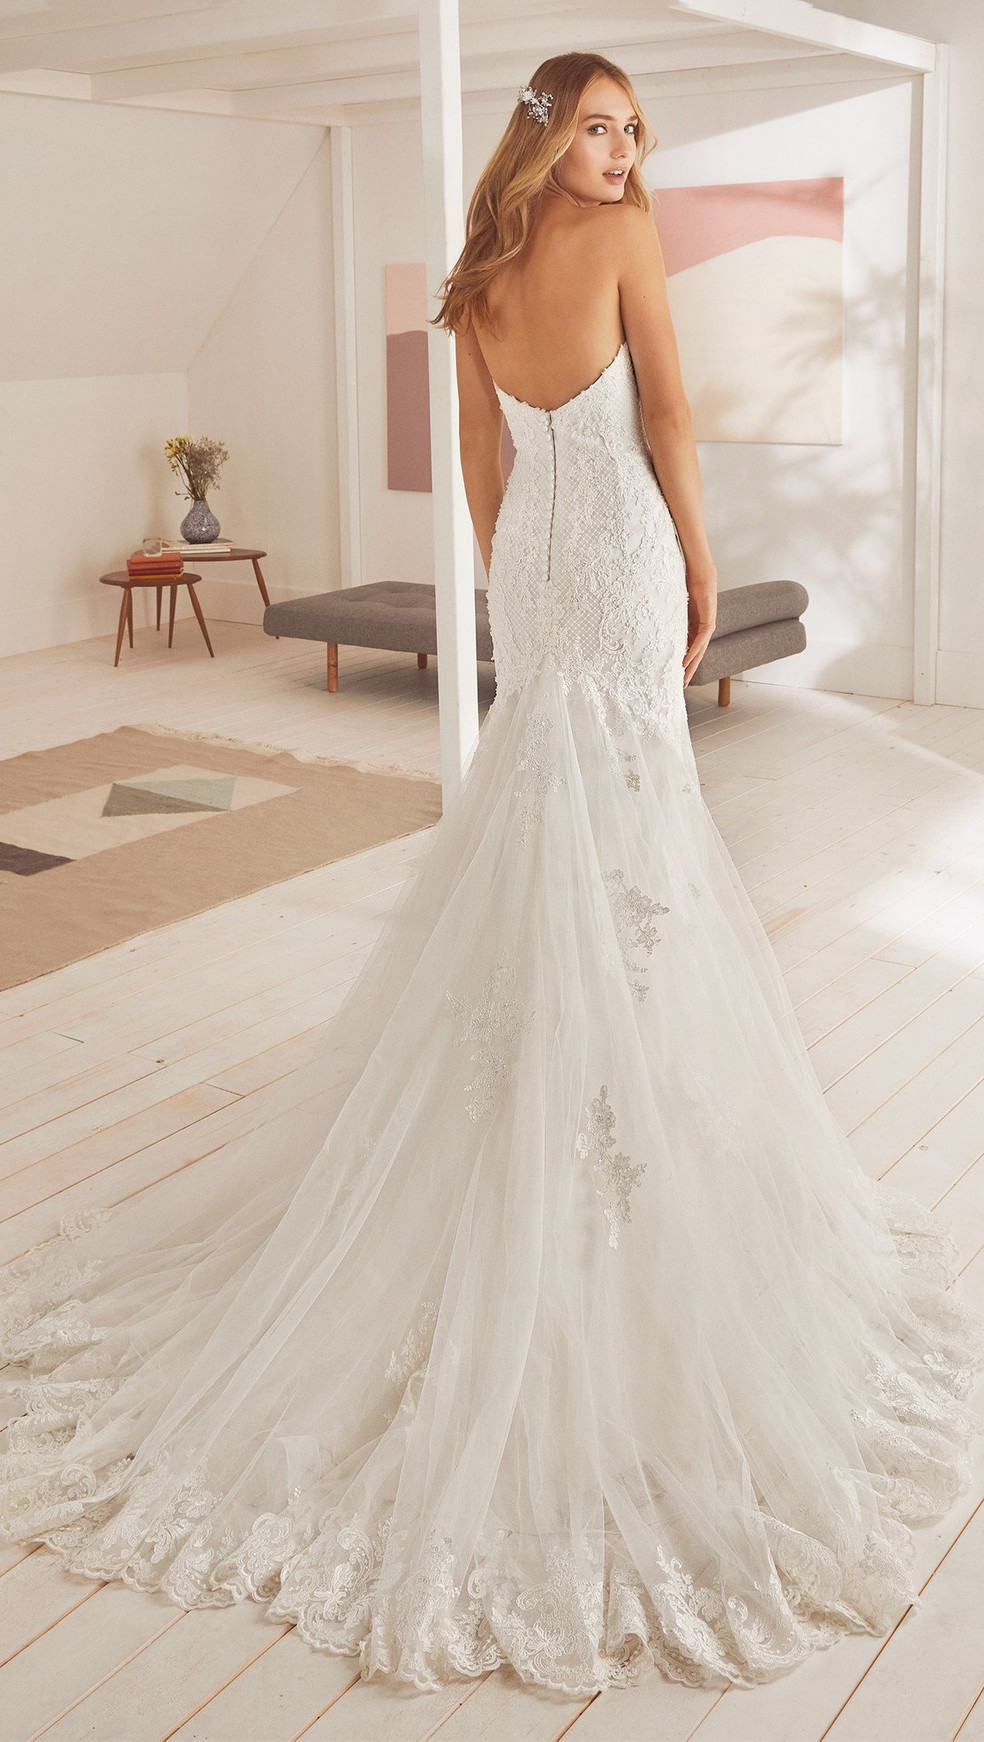 Shadevenne White One Bridal